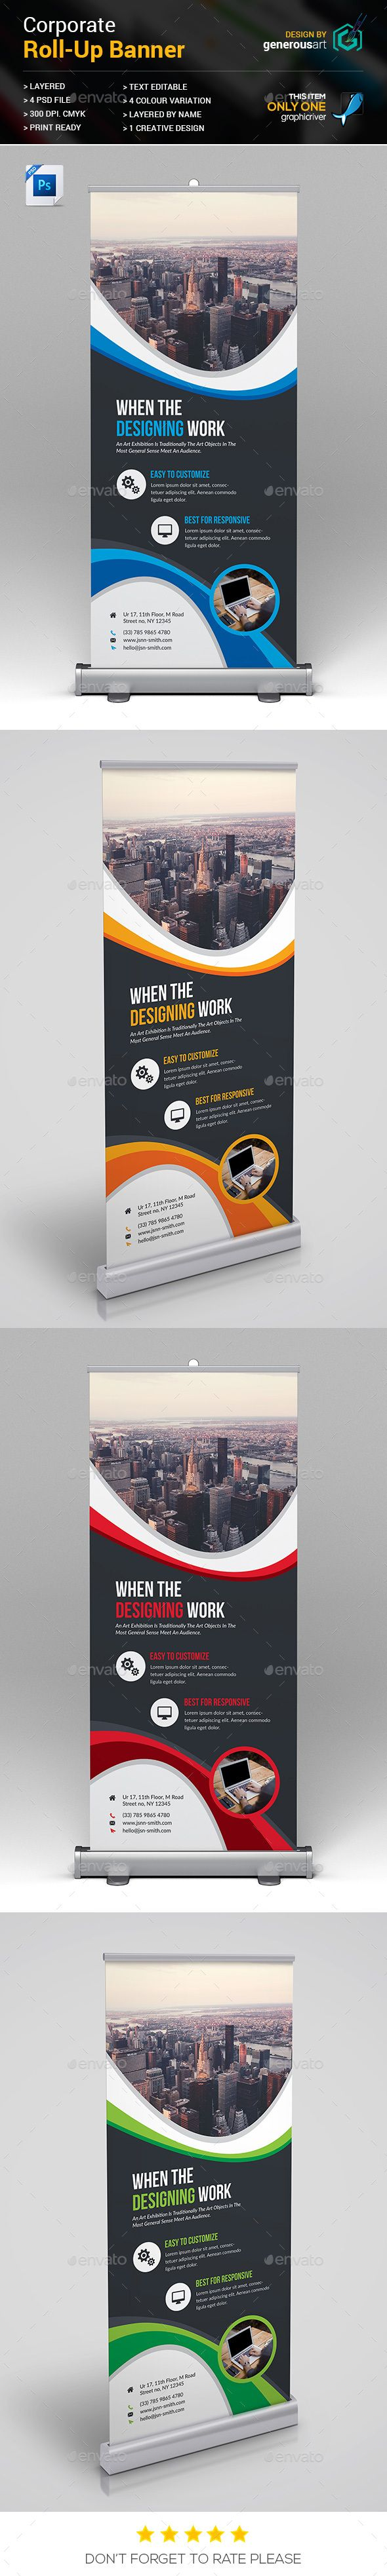 Roll-Up Banner - Stationery Print Templates